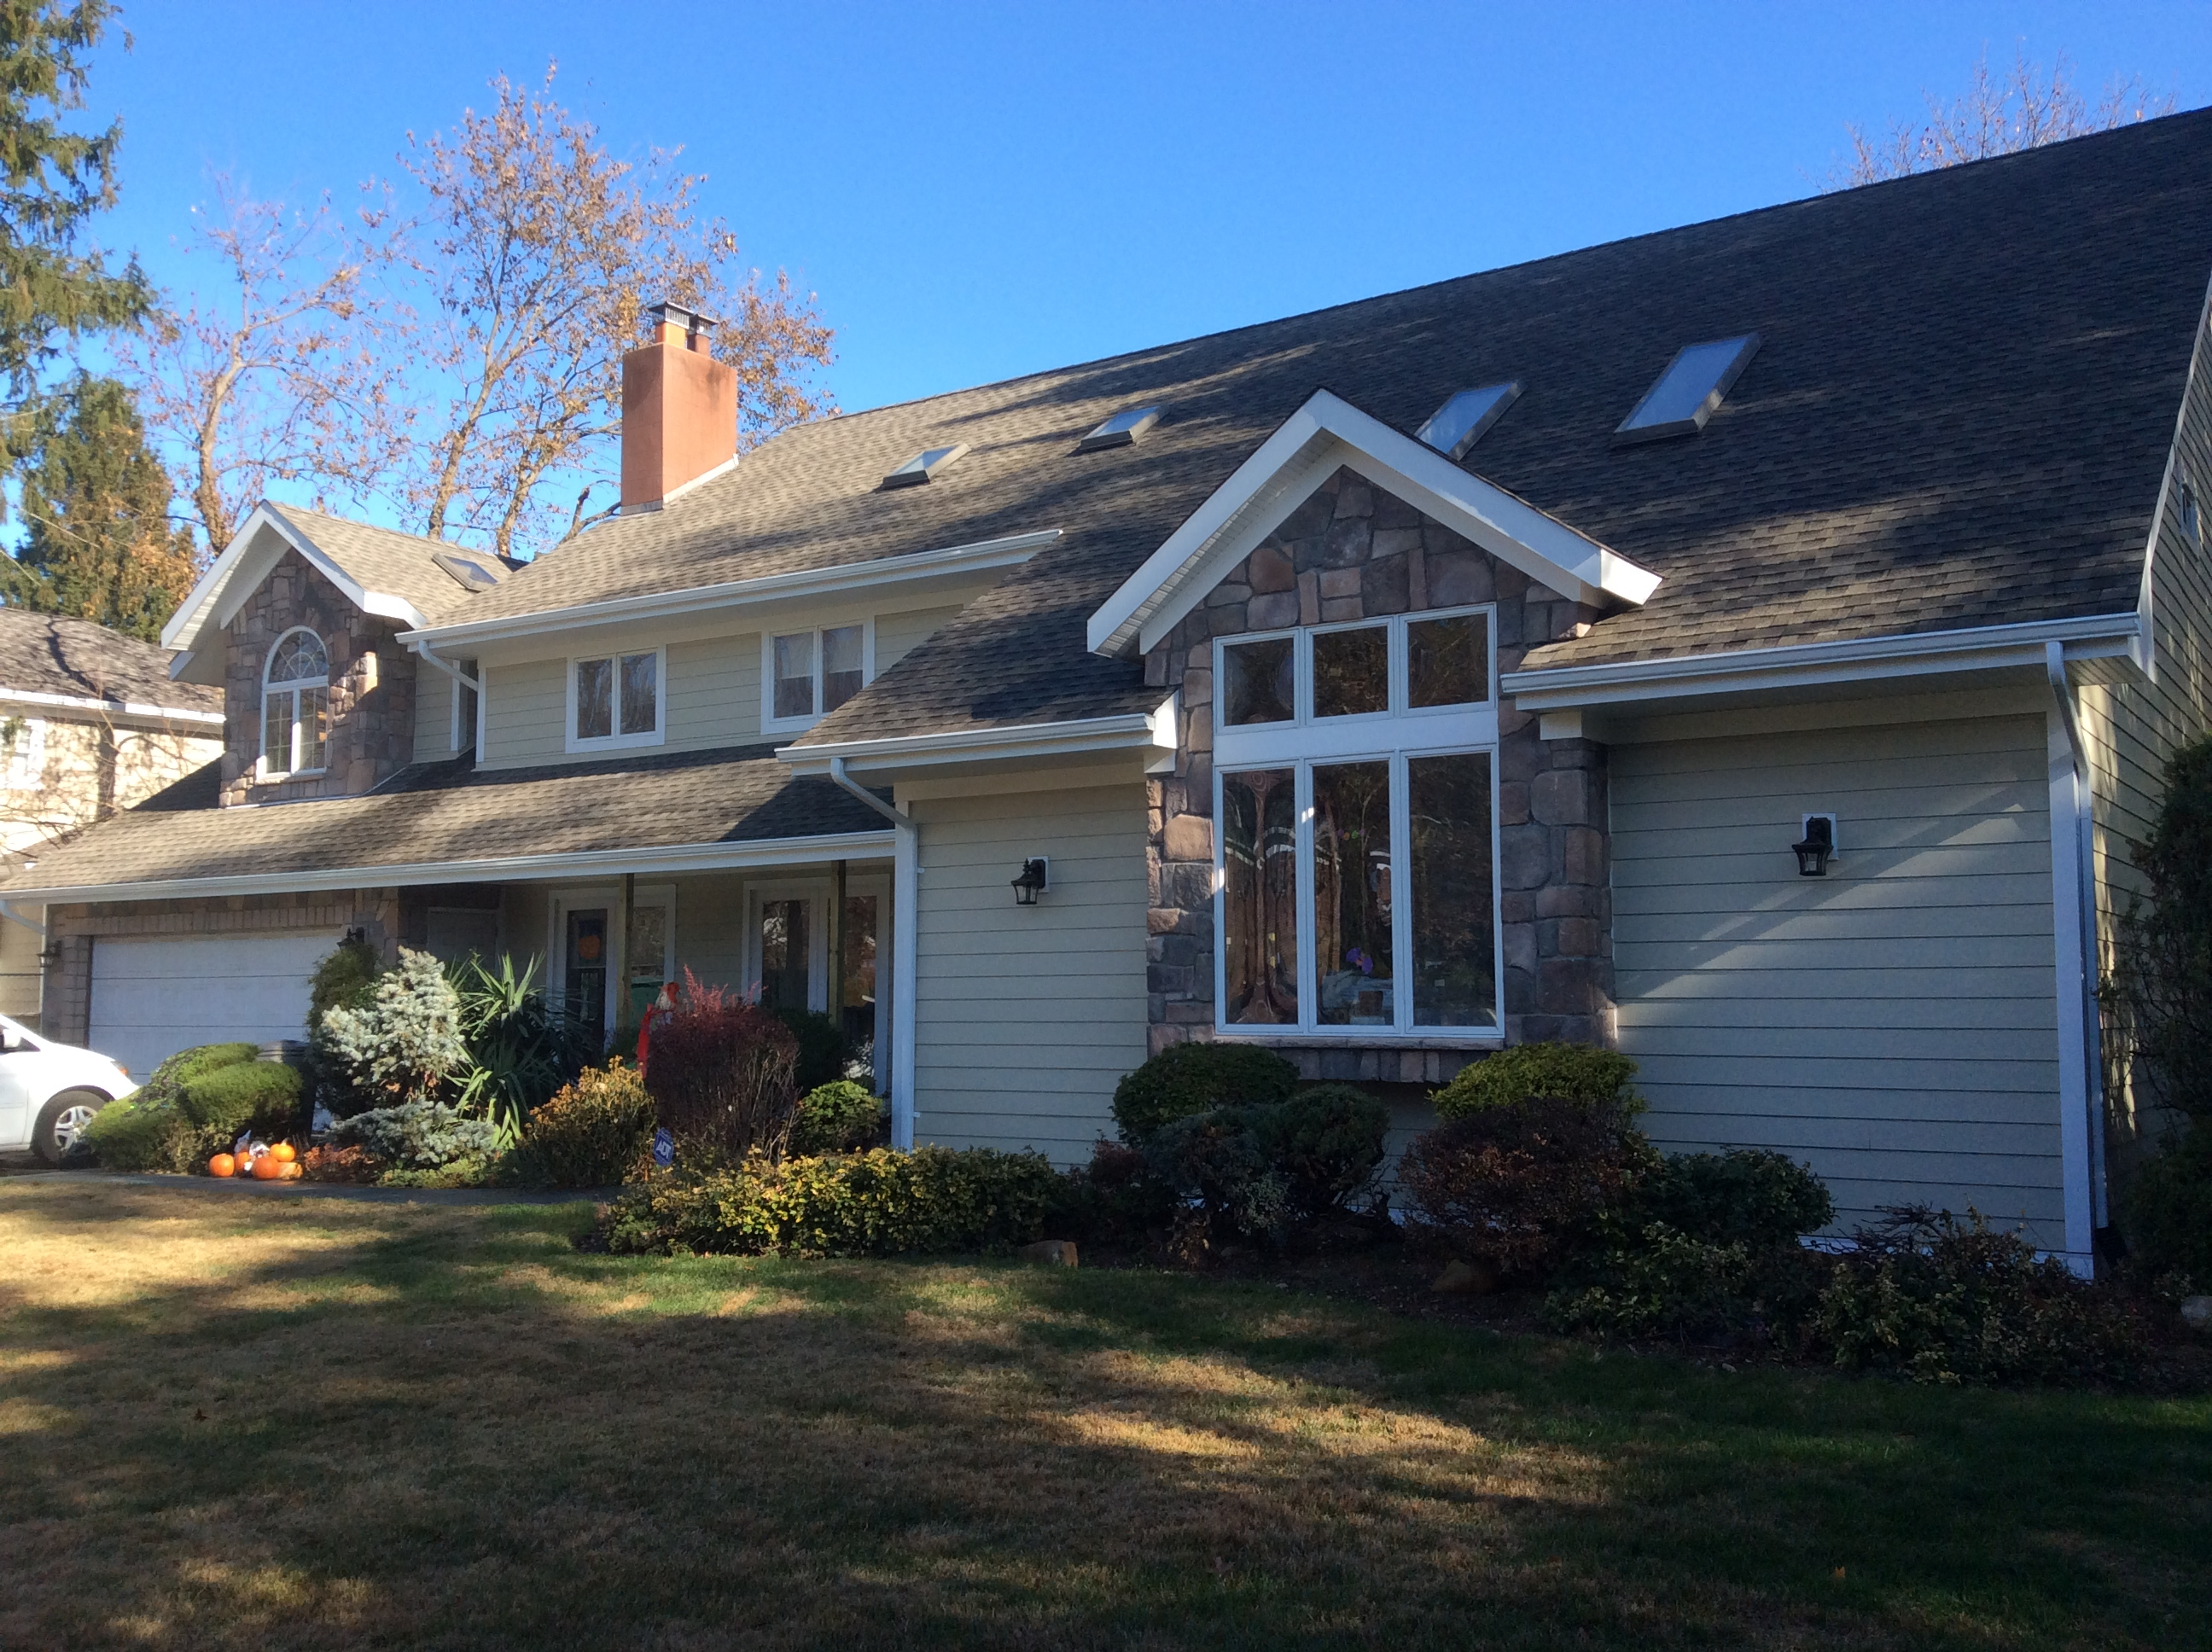 Exterior Siding Repair and Installation | Good Guys